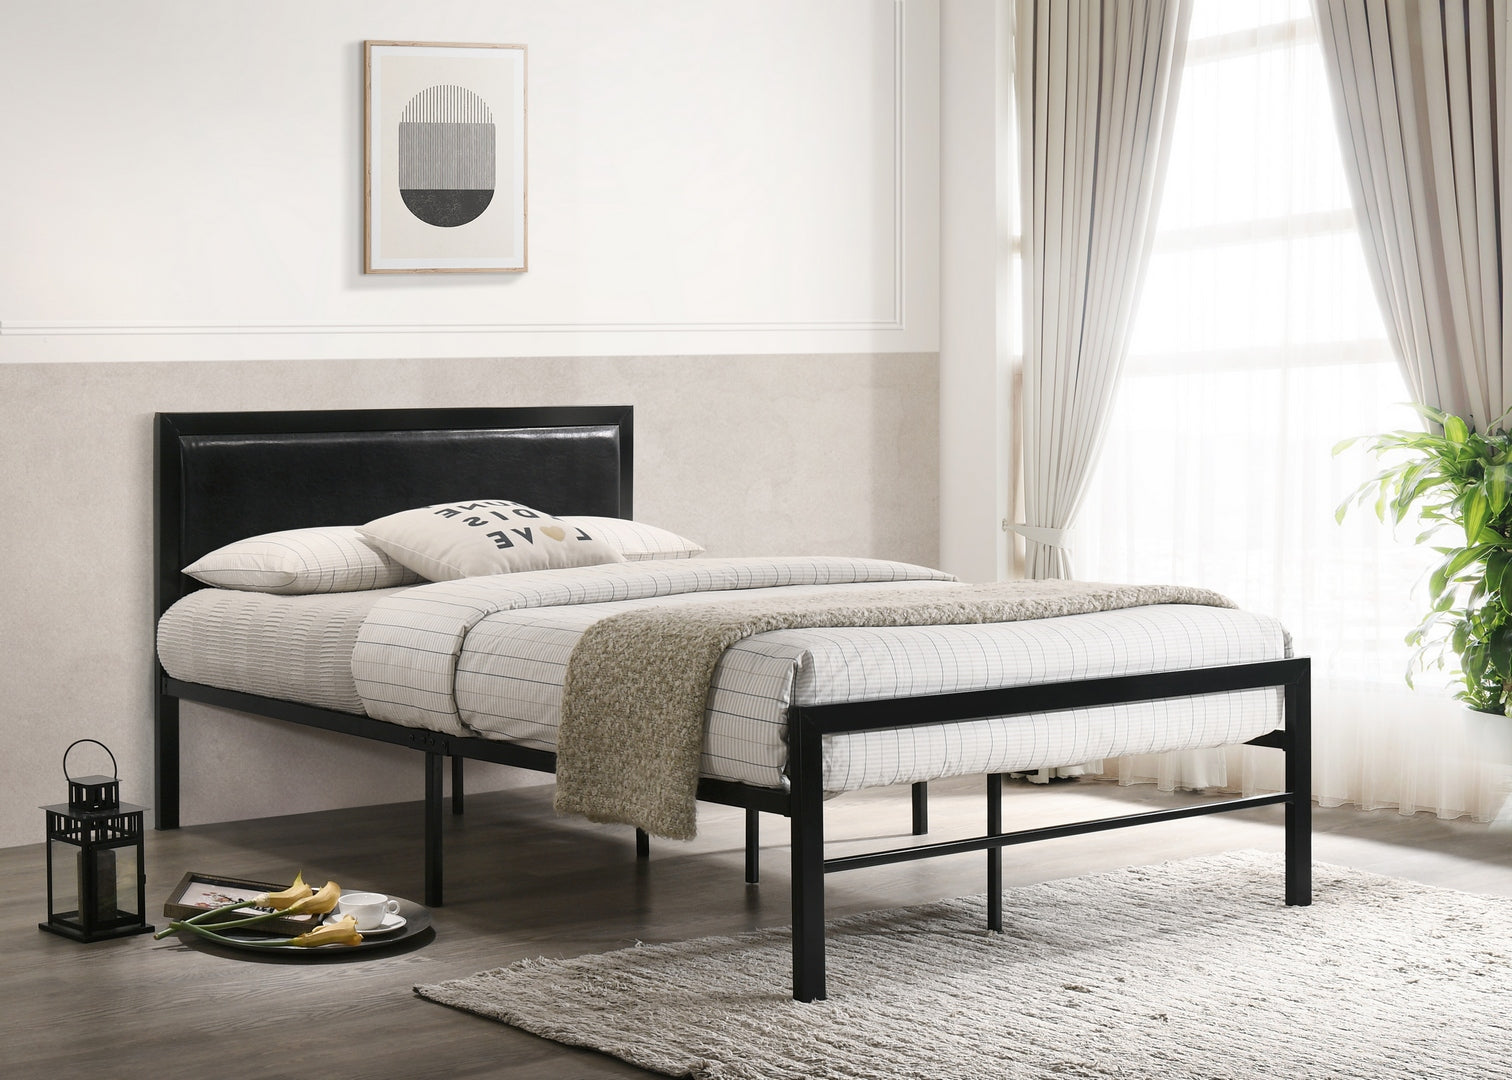 IF 142B - Black Metal Bed - Double